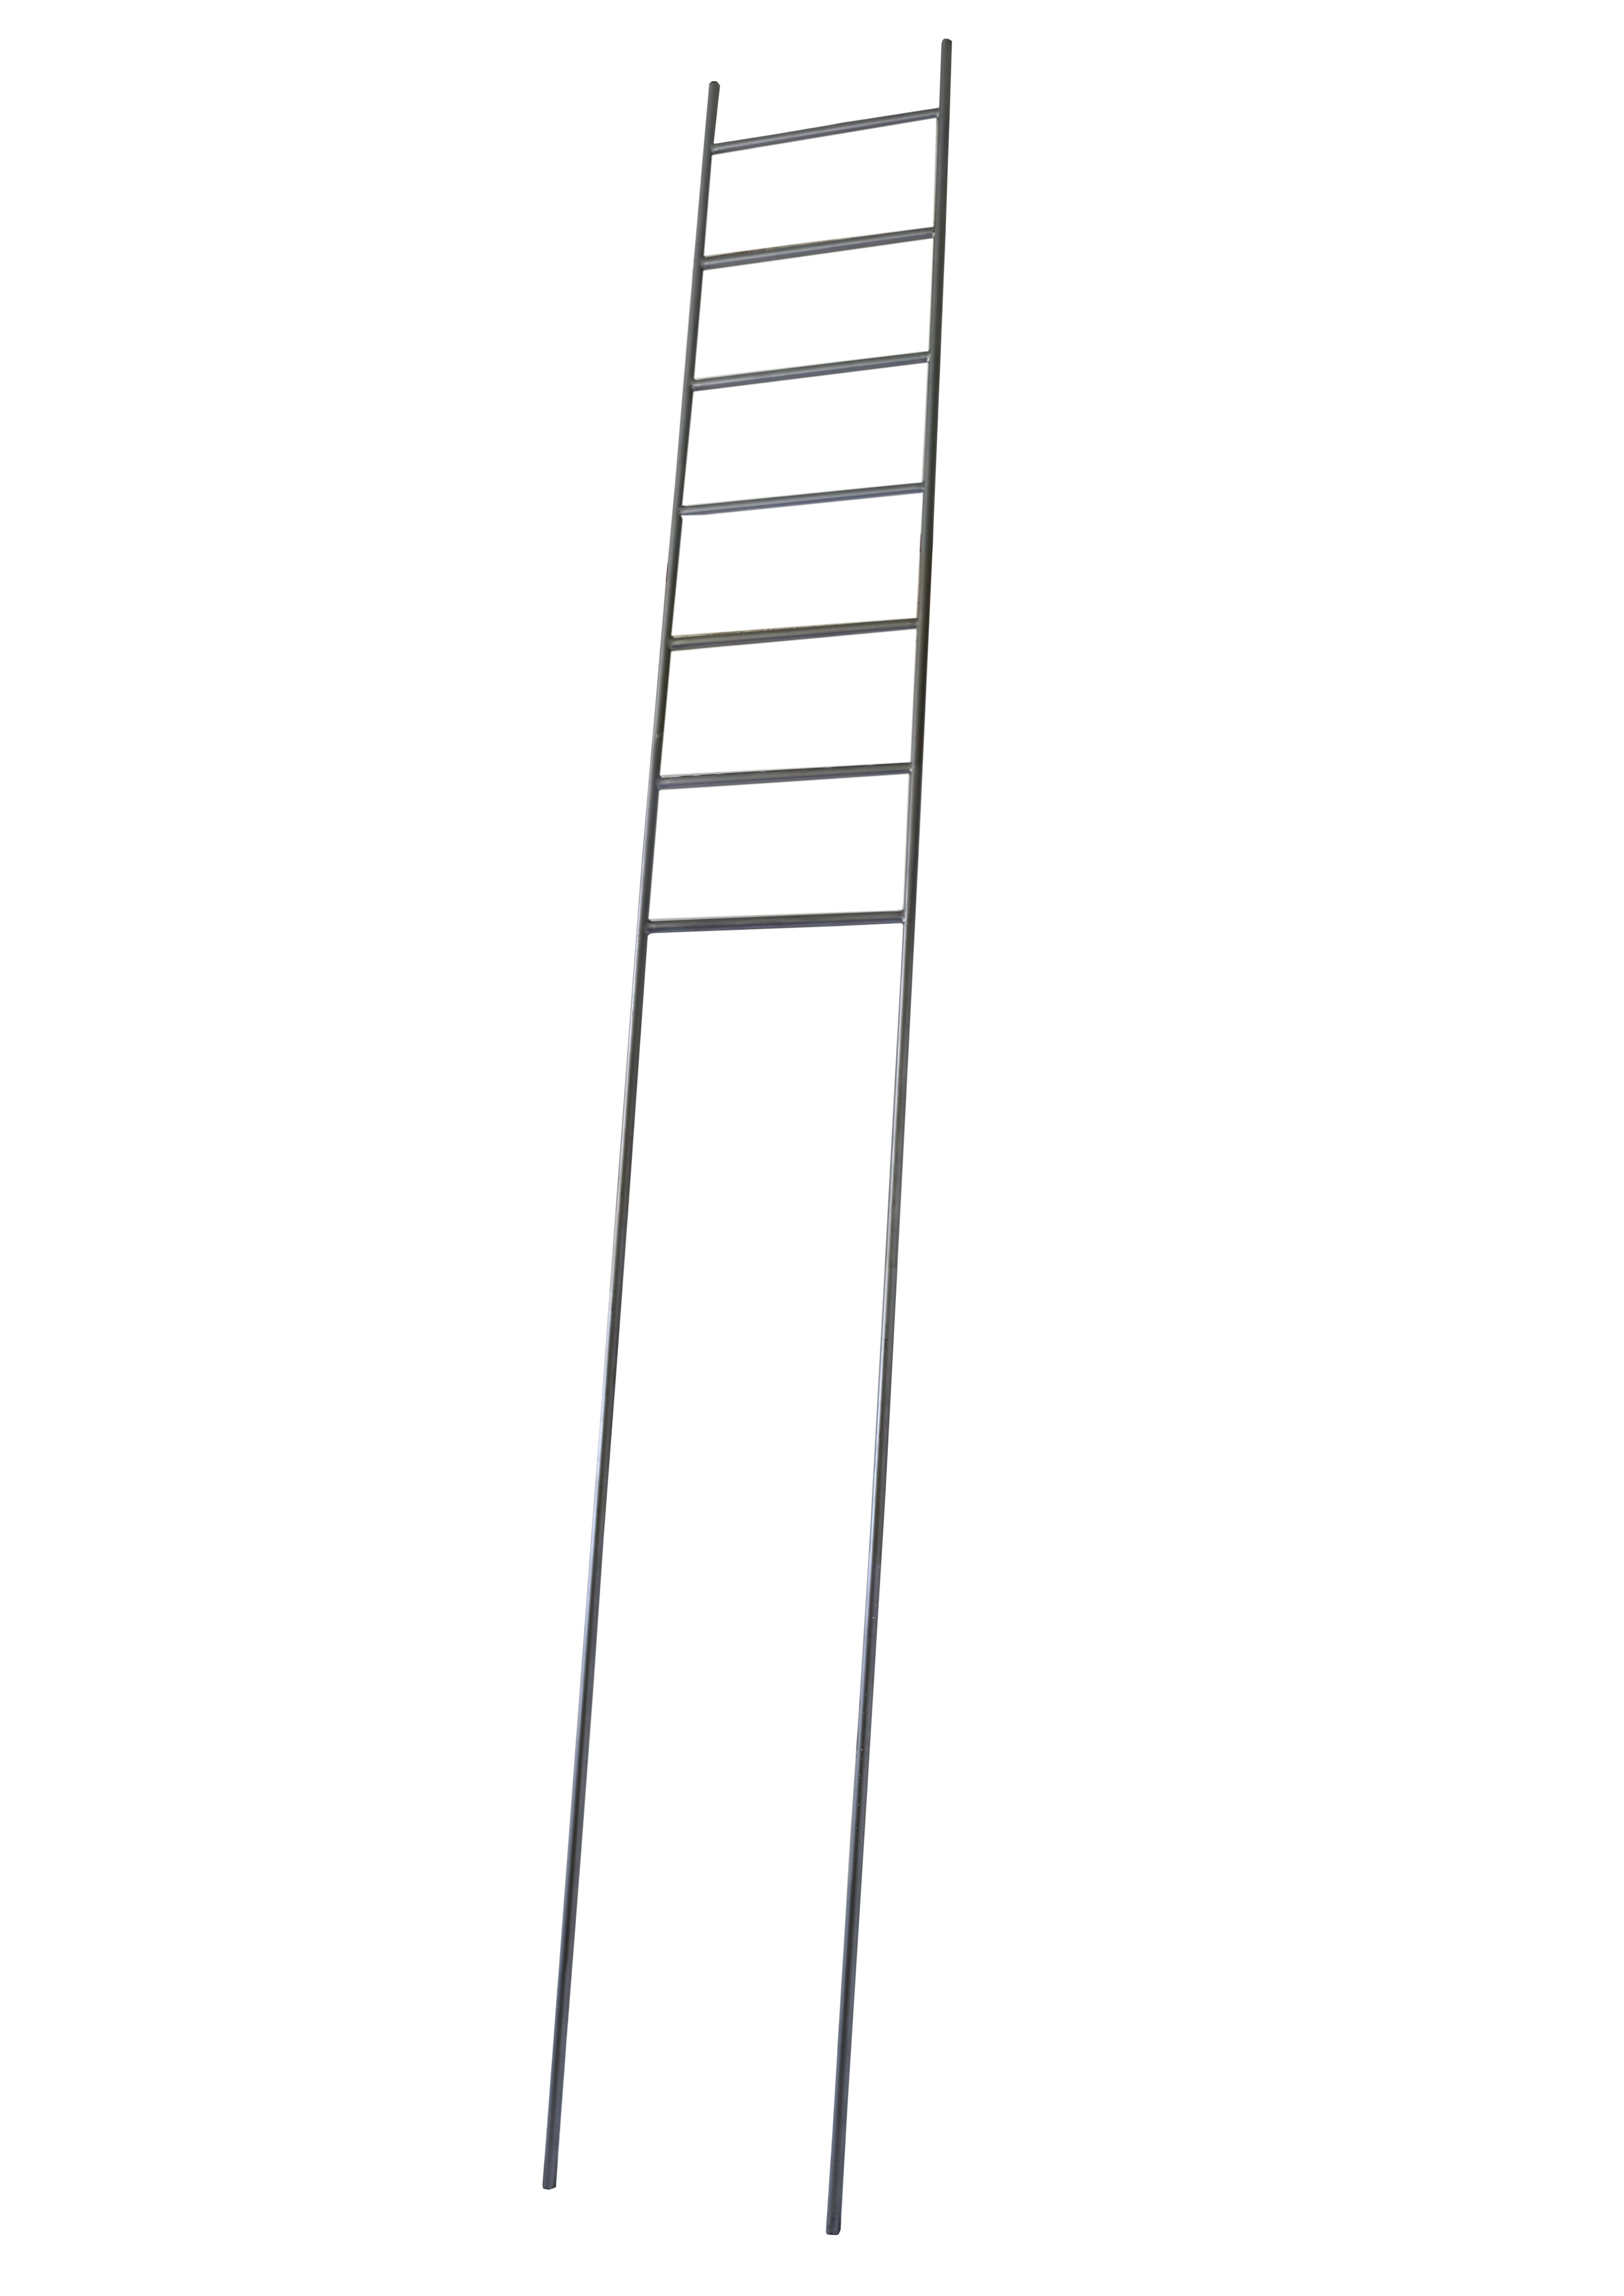 a sketch of a ladder by Tyra Naidoo